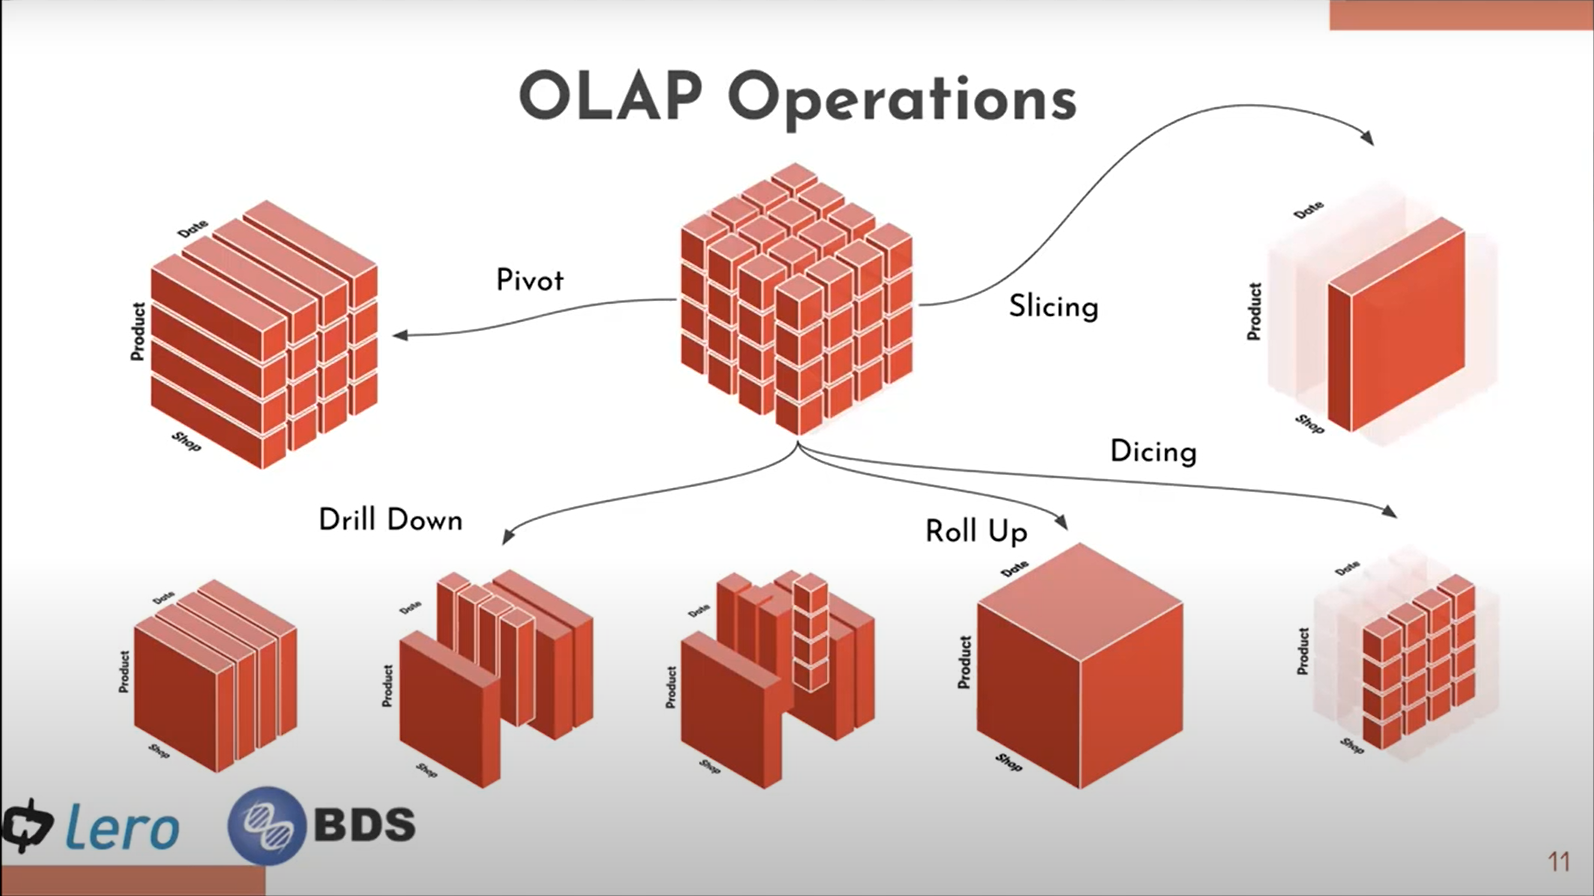 OLAP operations include drill down, roll up dicing and slicing.